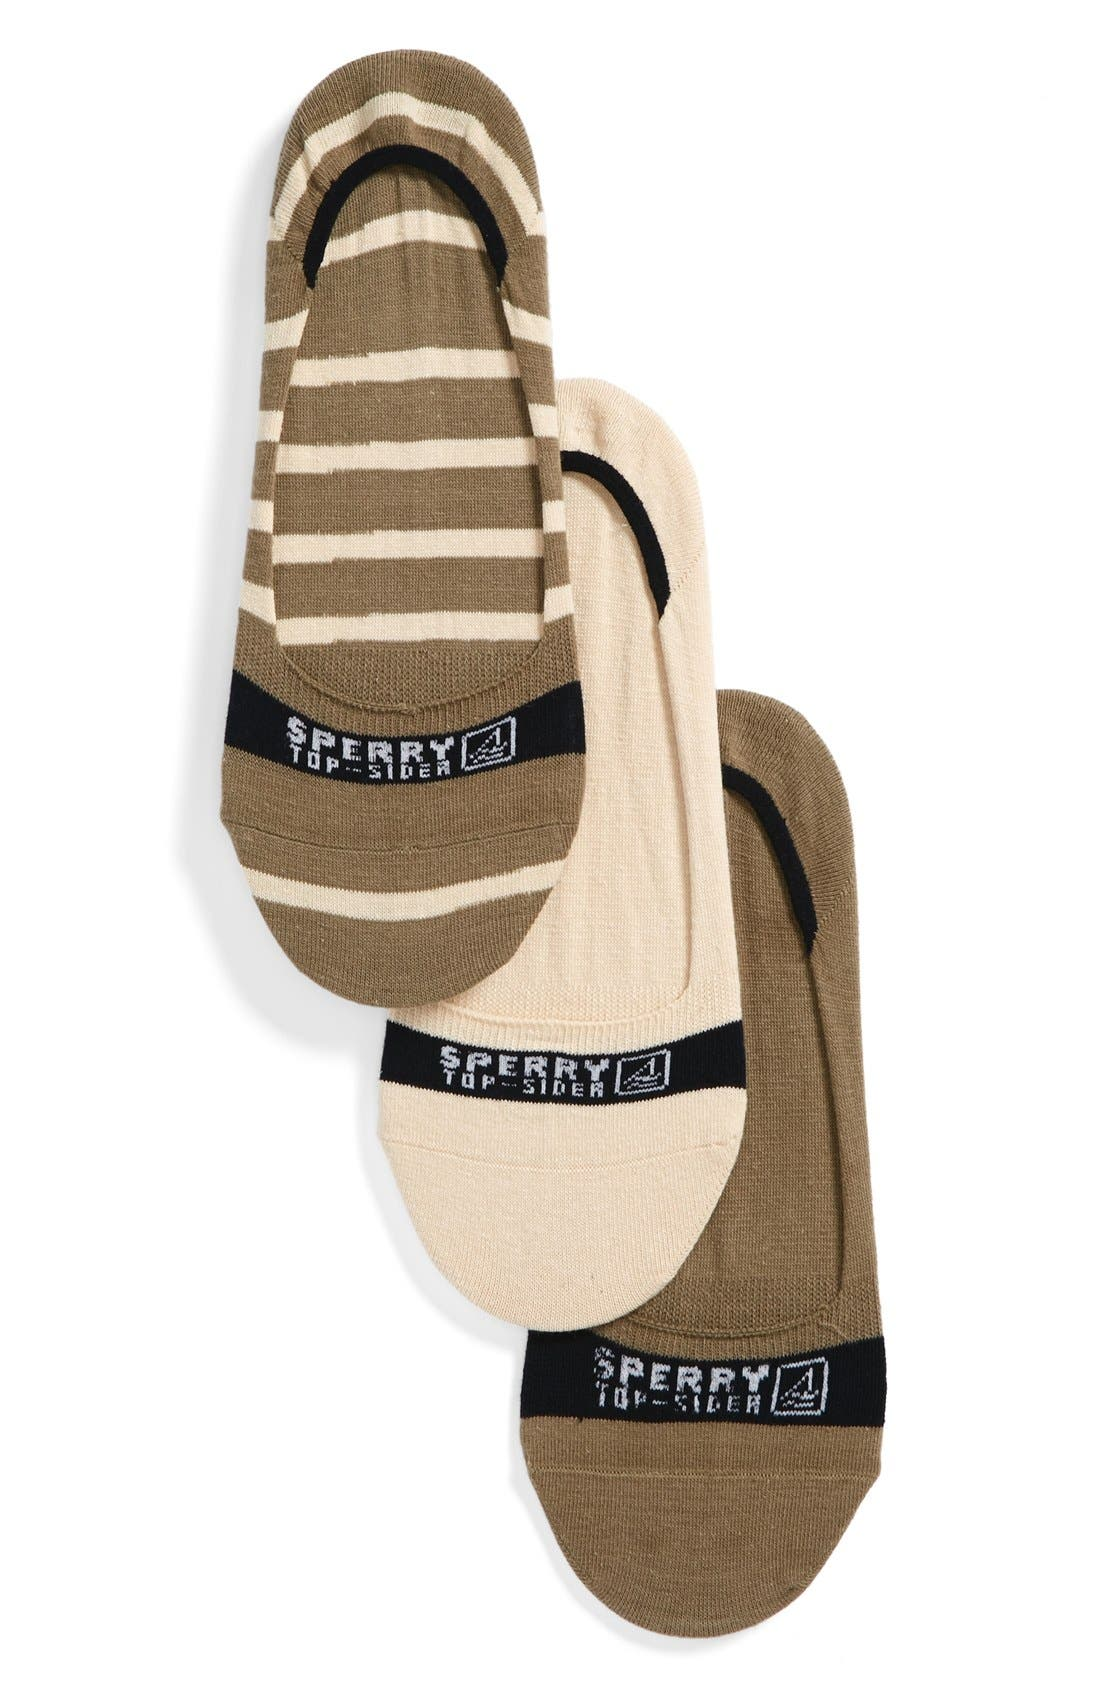 Alternate Image 1 Selected - Sperry Signature Invisible Assorted 3-Pack Socks